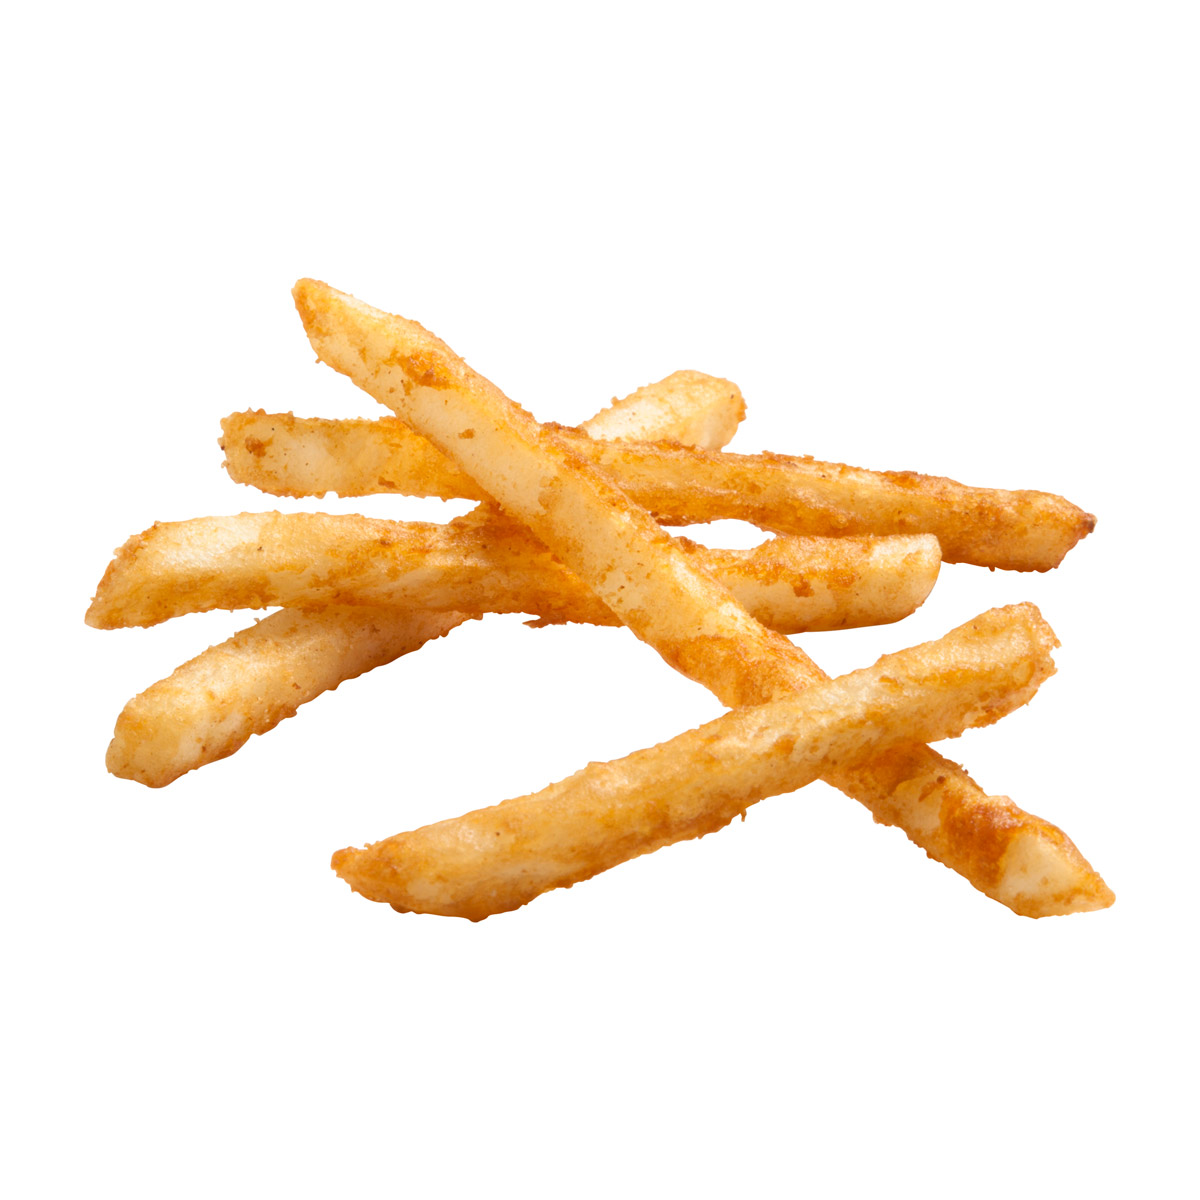 Battered French Fries